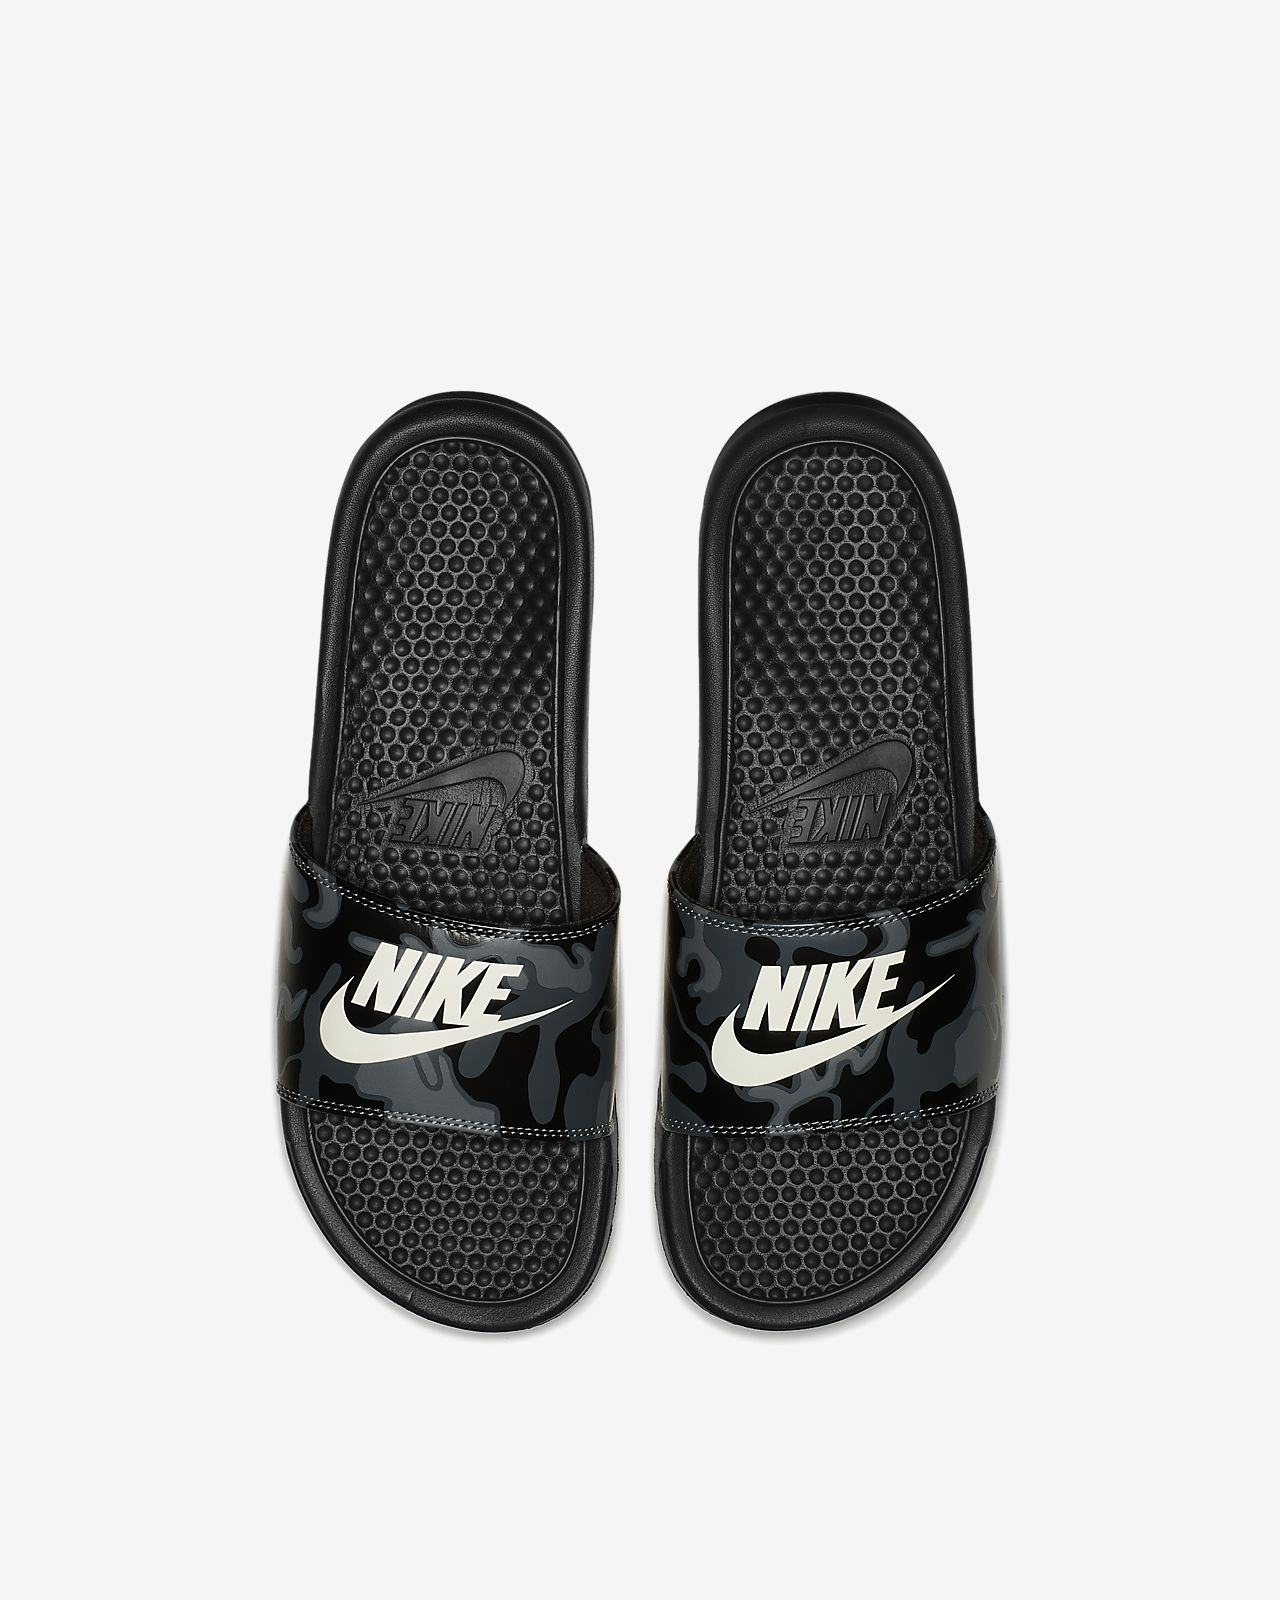 check out b145a 4ae6a ... Claquette Nike Benassi JDI Printed pour Homme